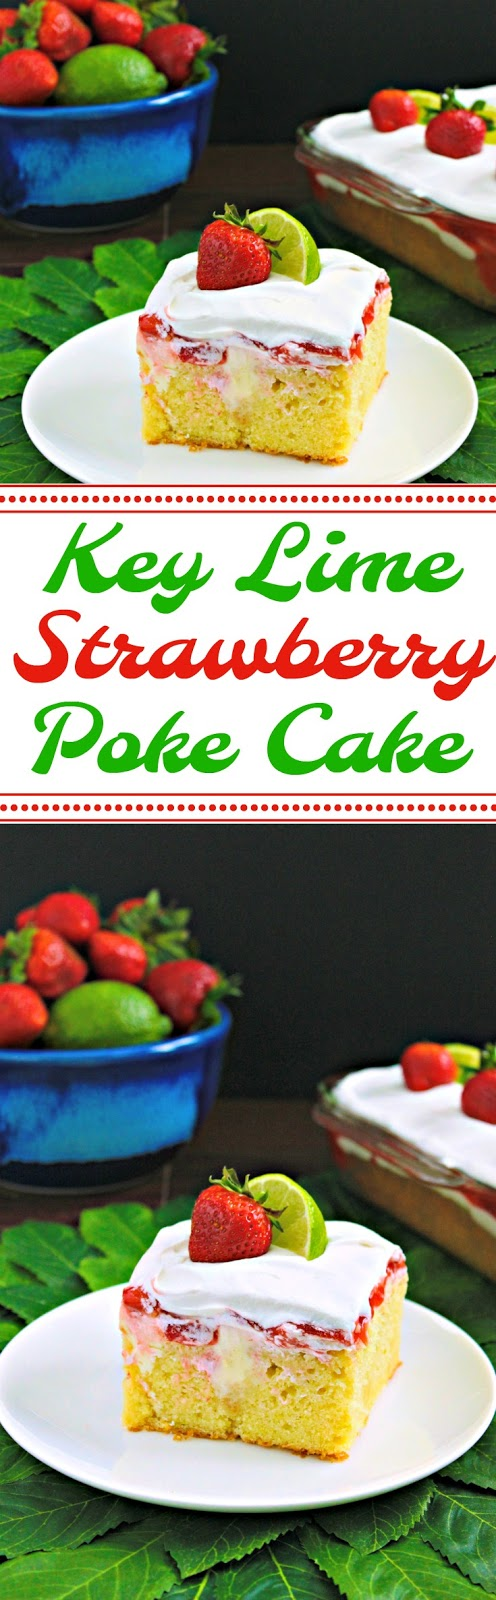 Key Lime Strawberry Poke Cake from LoveandConfections.com